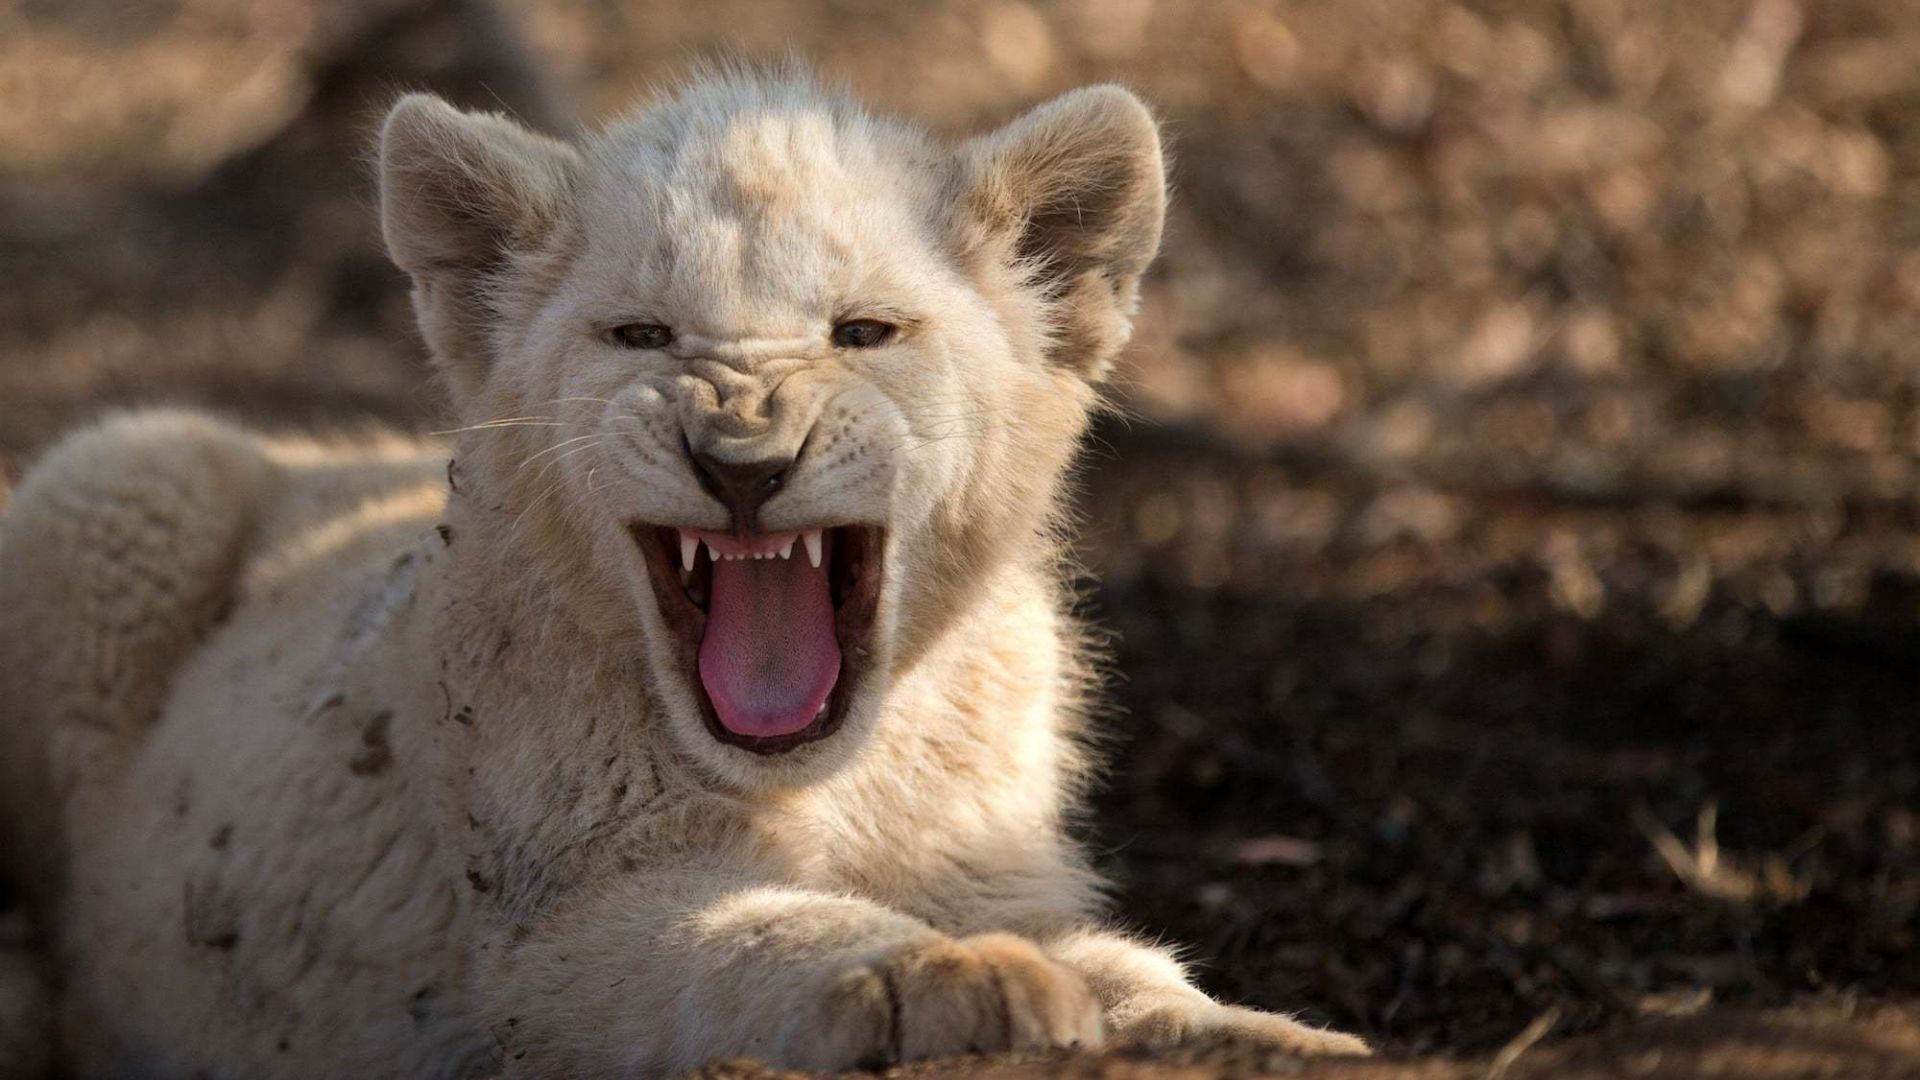 Desktop Wallpaper Angry, Baby White Lion, Cub, Wild Animal ...